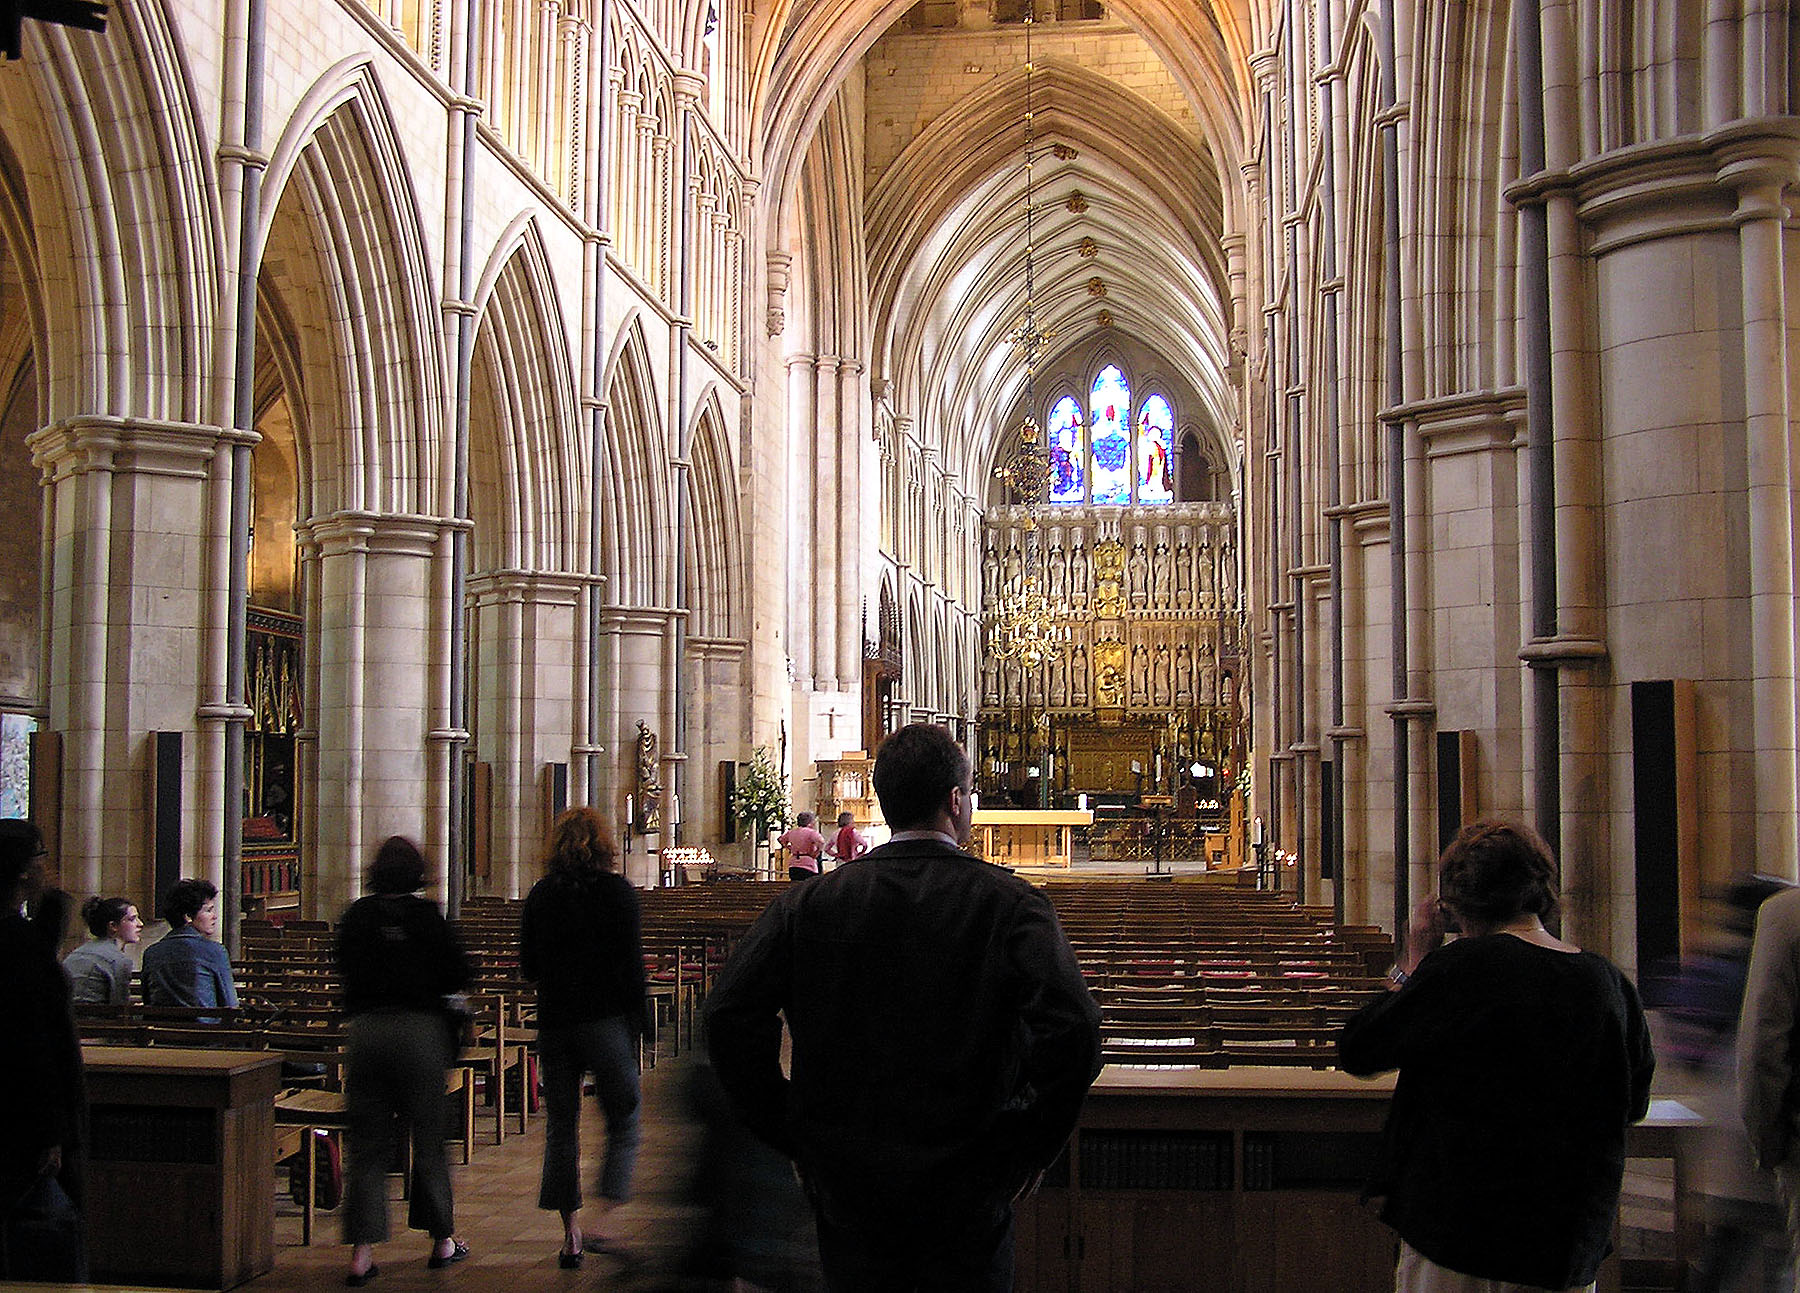 Southwark.cathedral.nave.london.arp.jpg